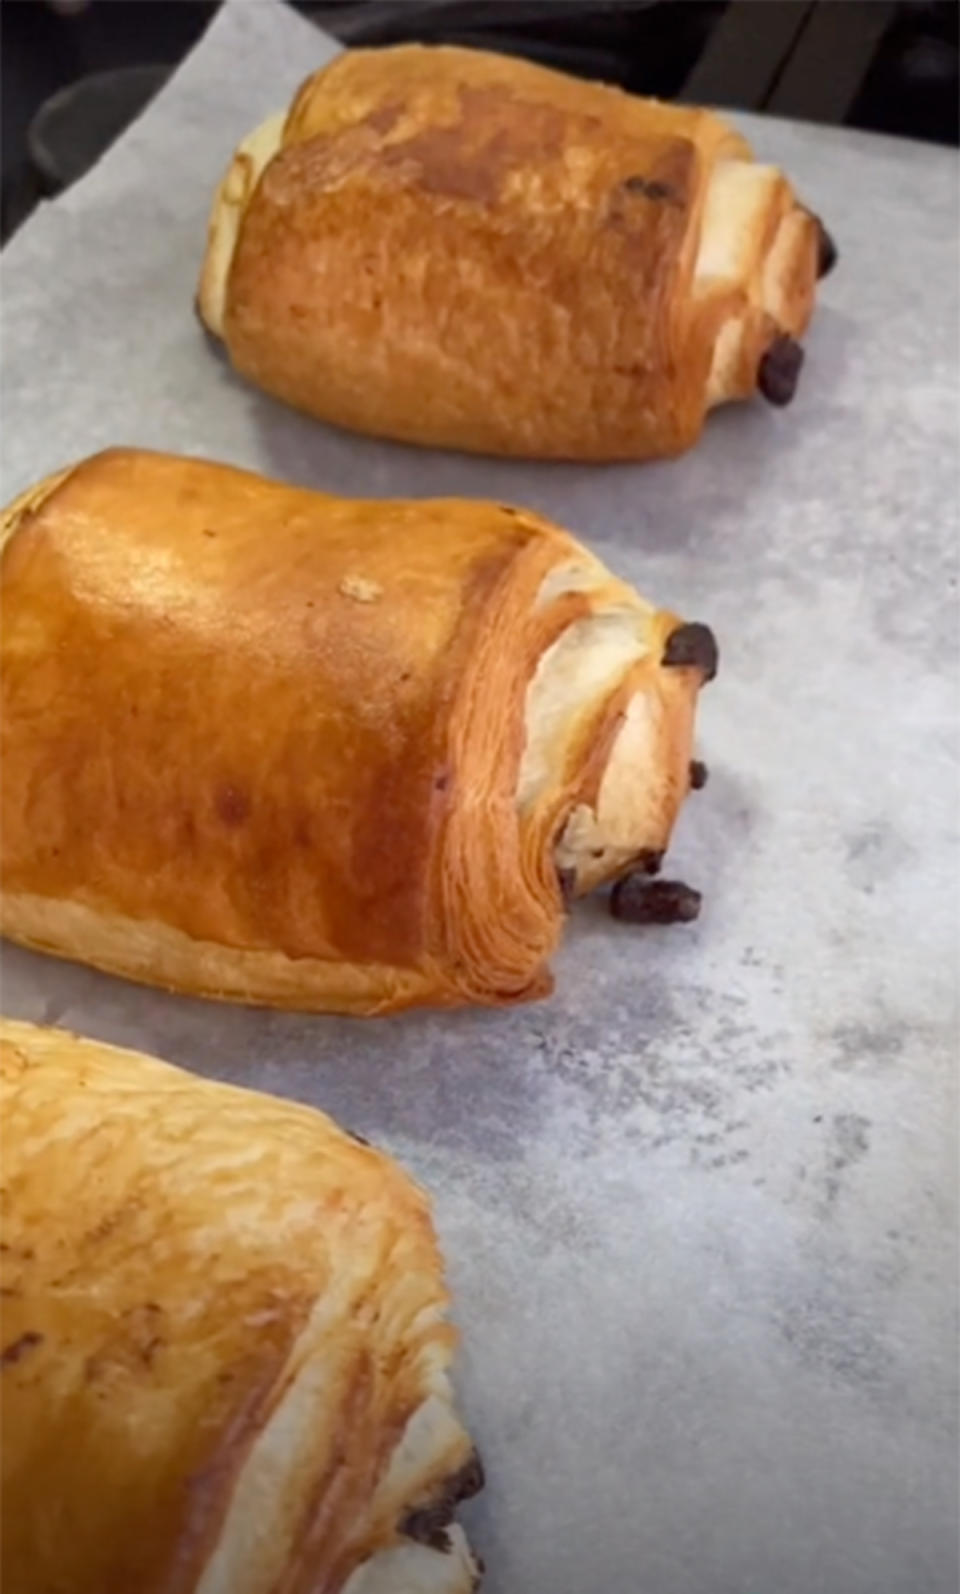 A TikTok video of Coles Frozen Bake At Home Pain Au Chocolat 6 Pack by @lucyhelenak